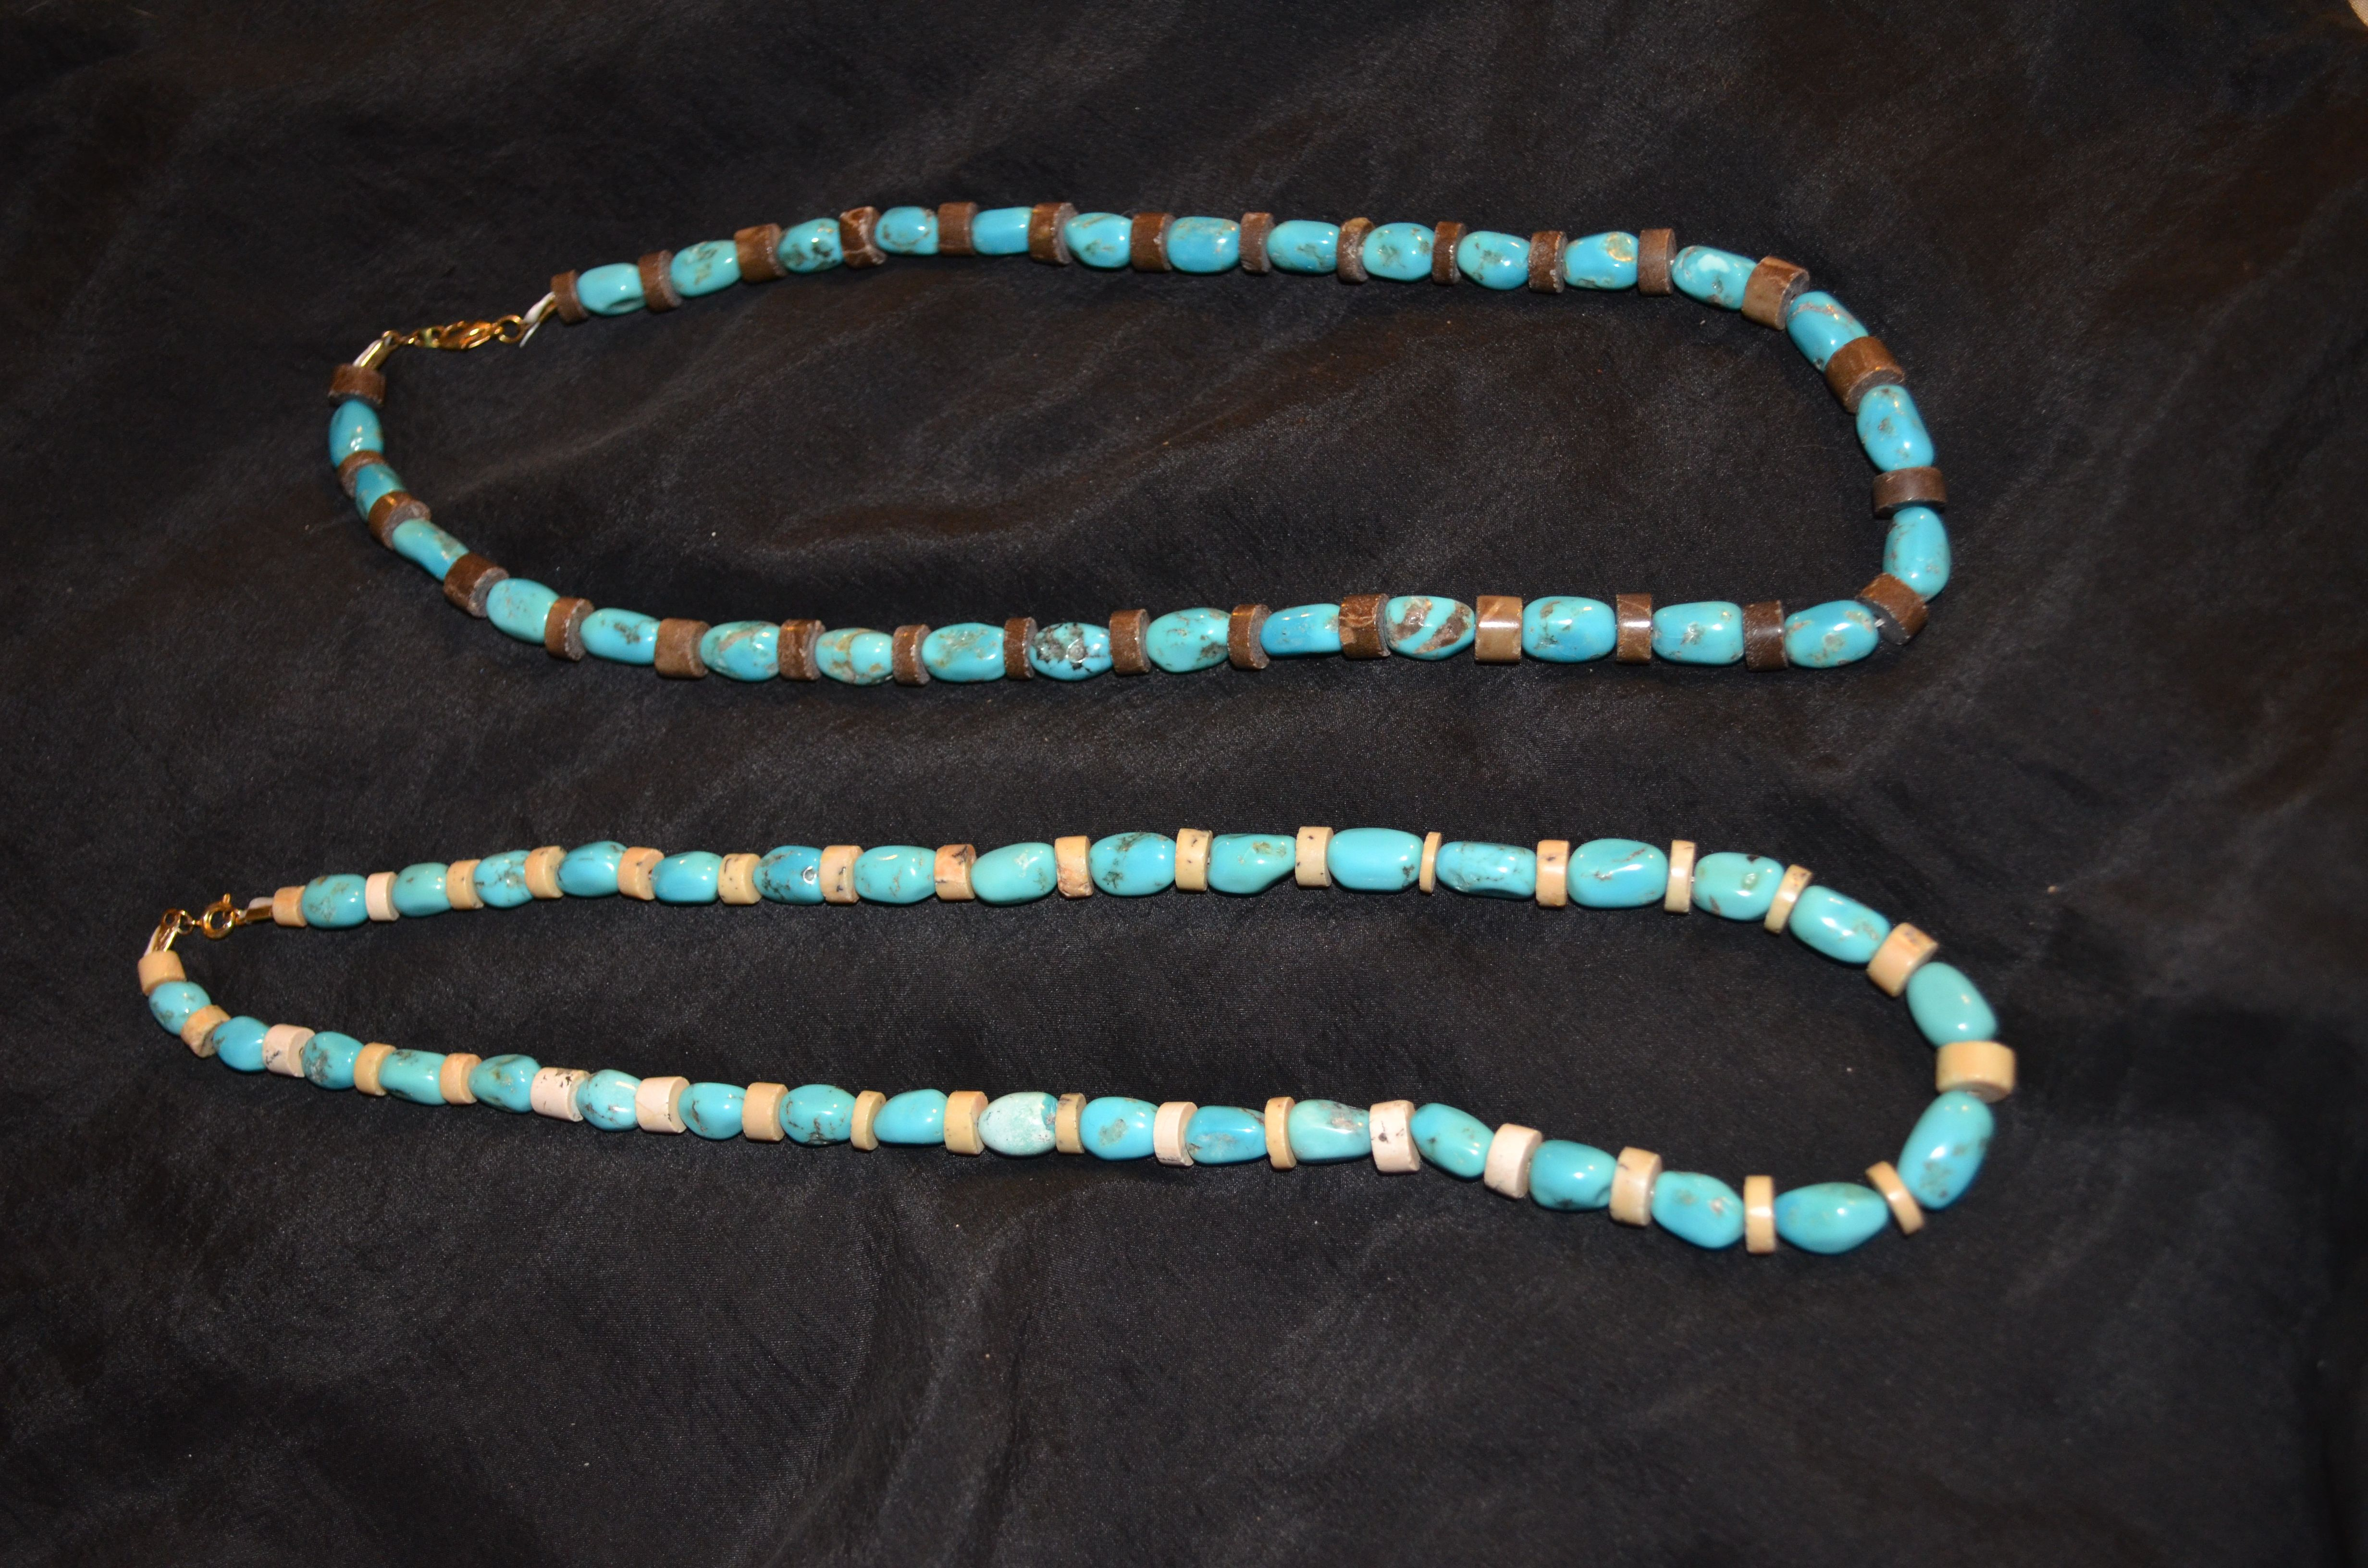 Turquoise necklaces with carved beads separating the stones. I made this.